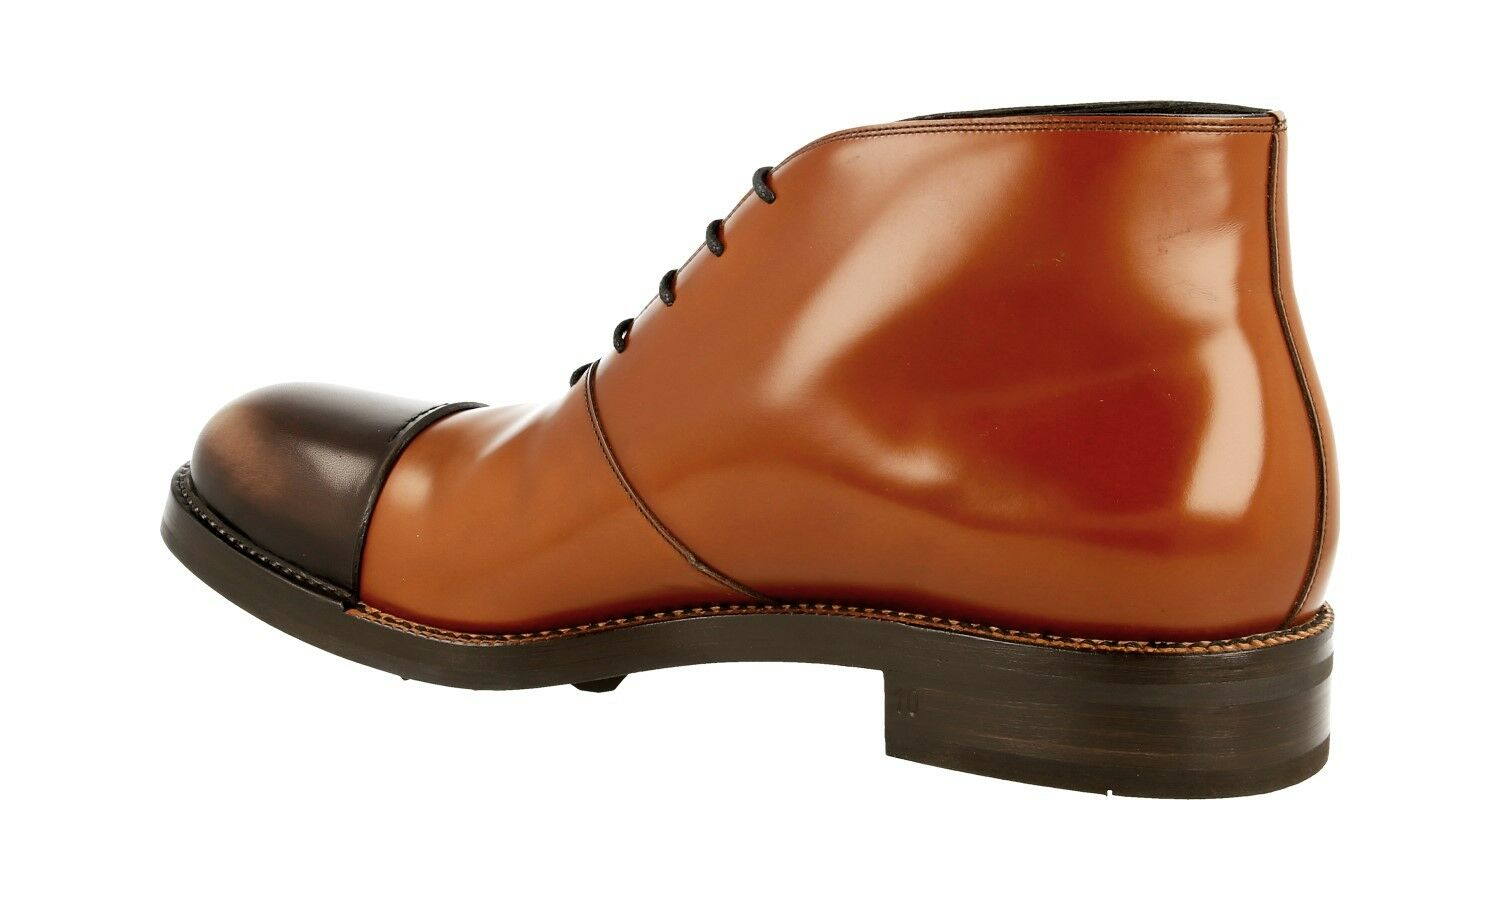 AUTH LUXURY PRADA HALF-BOOT SHOES 2TG108 TABACCO TABACCO TABACCO EBONY NEW 10 44 44,5 6e64c2